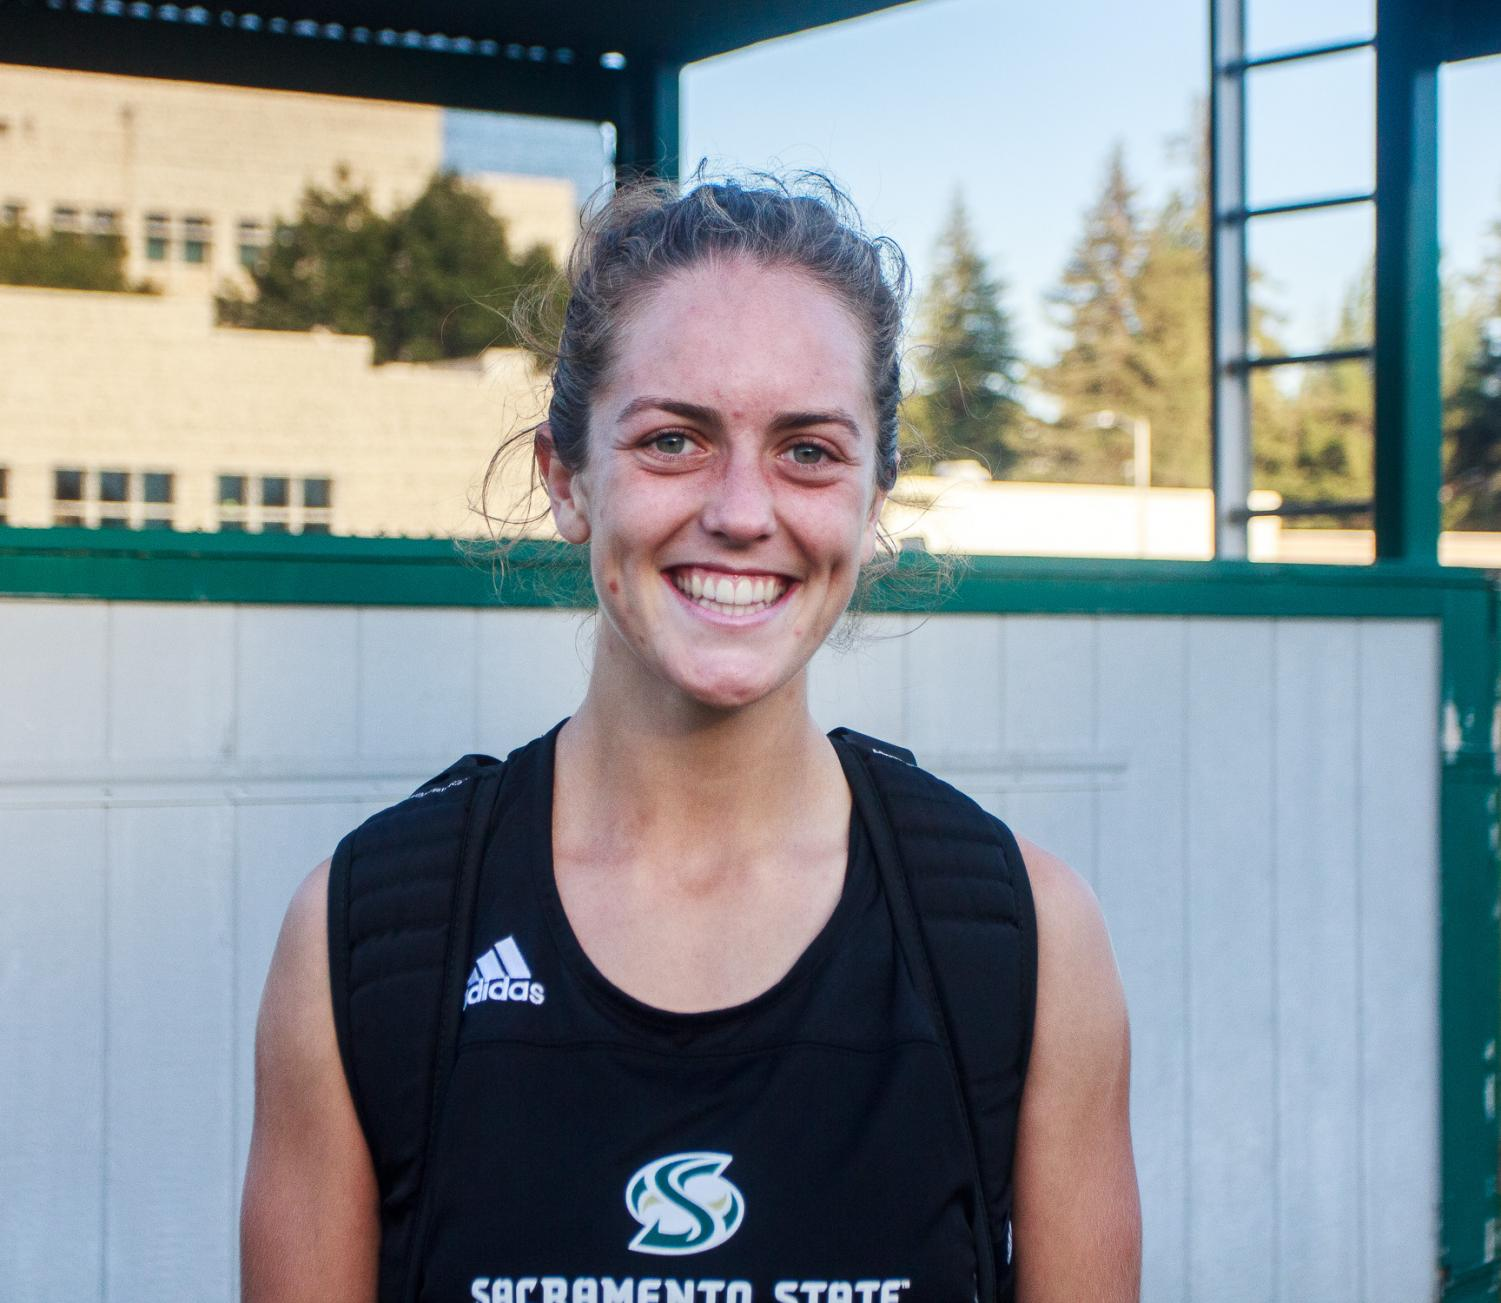 Sac State senior Caitlin Prothe has become a captain in her last two seasons as a Hornet. She has gone through numerous injuries throughout her career.